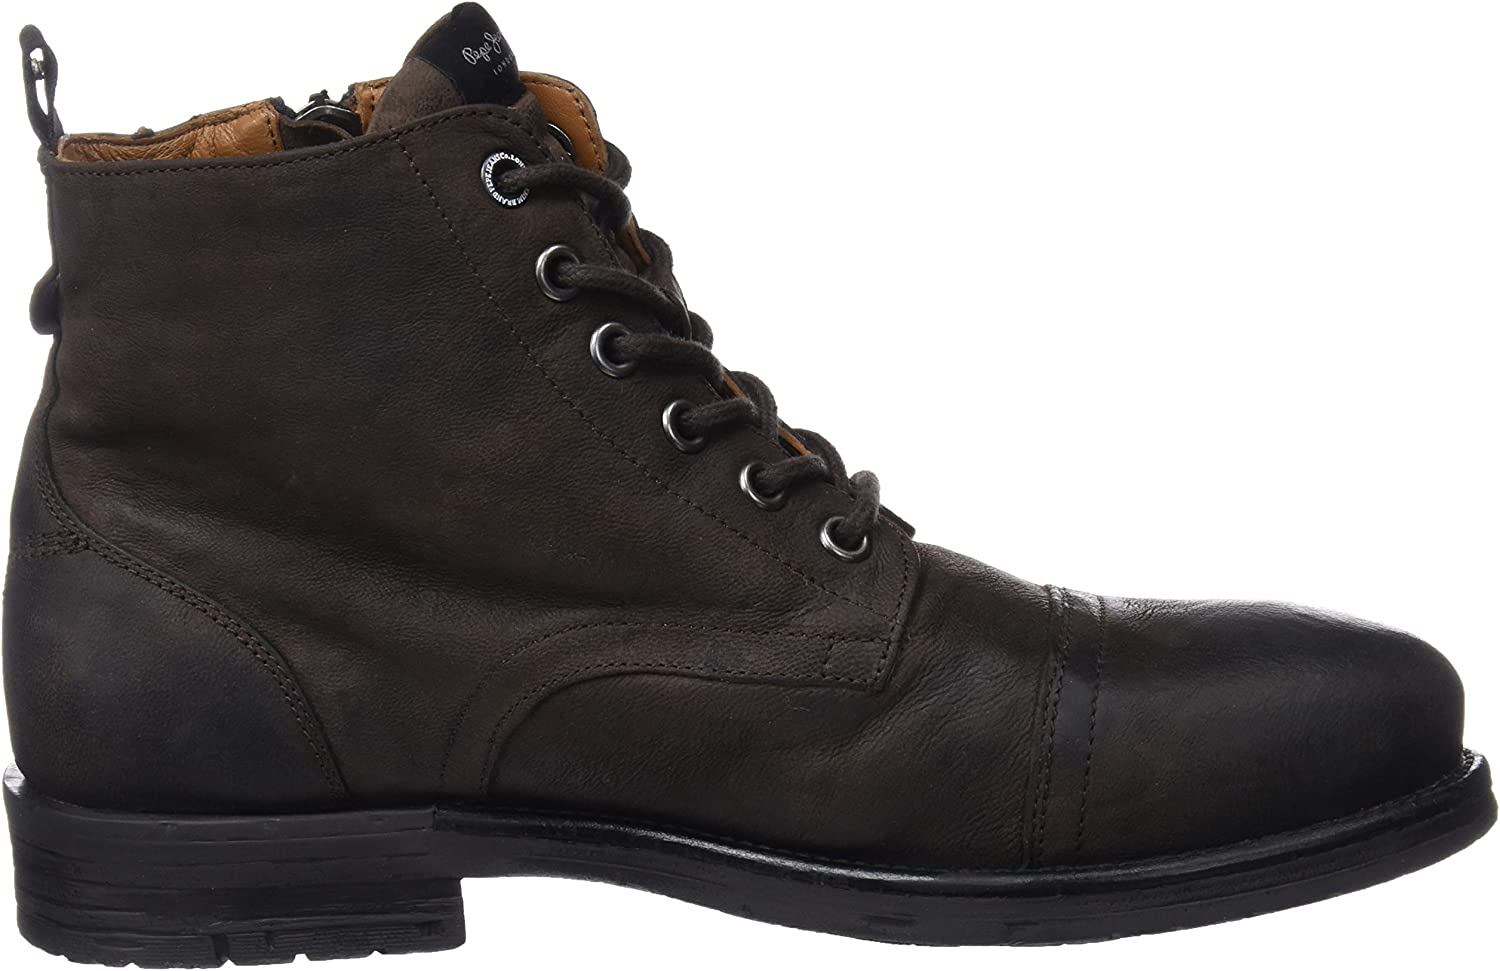 Pepe Jeans Men's Tom-Cut Med Boot Classic Brown Stag 884